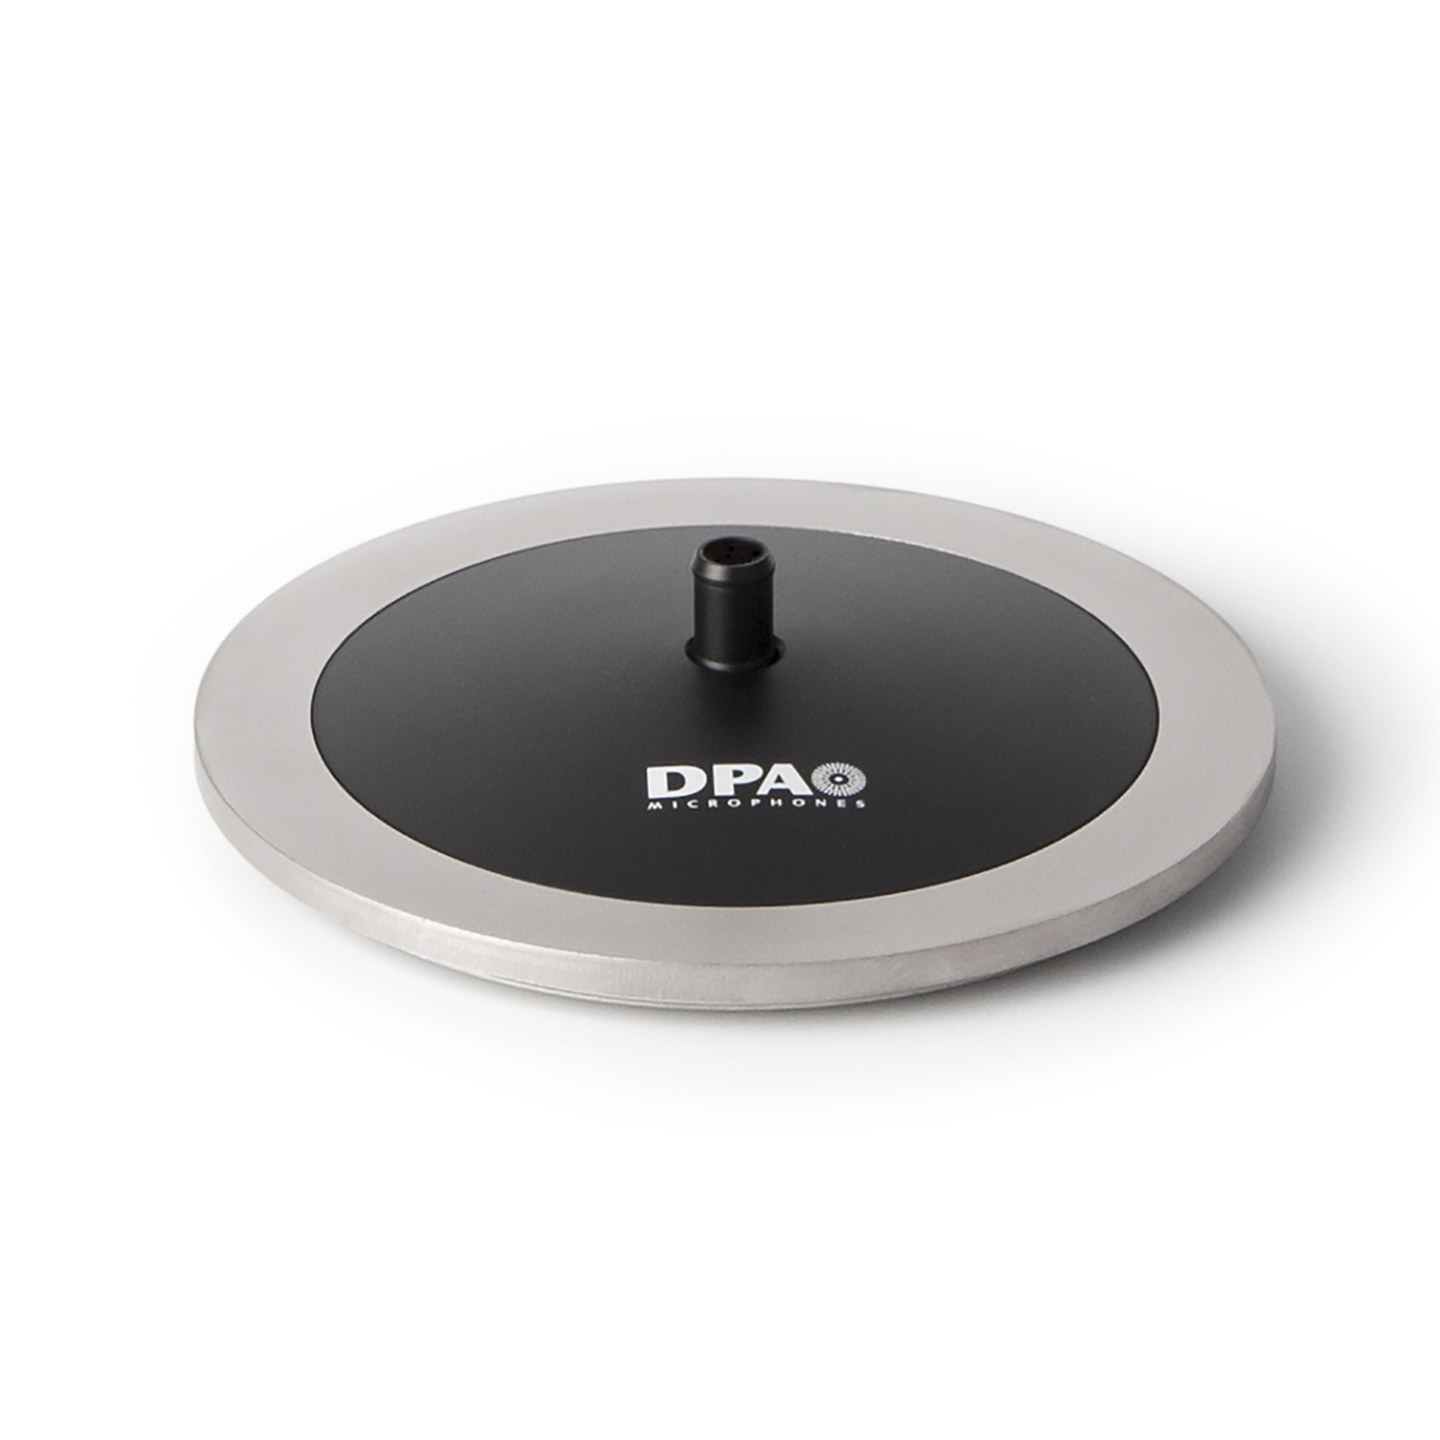 DPA Microphone Base (DM6000) in Black